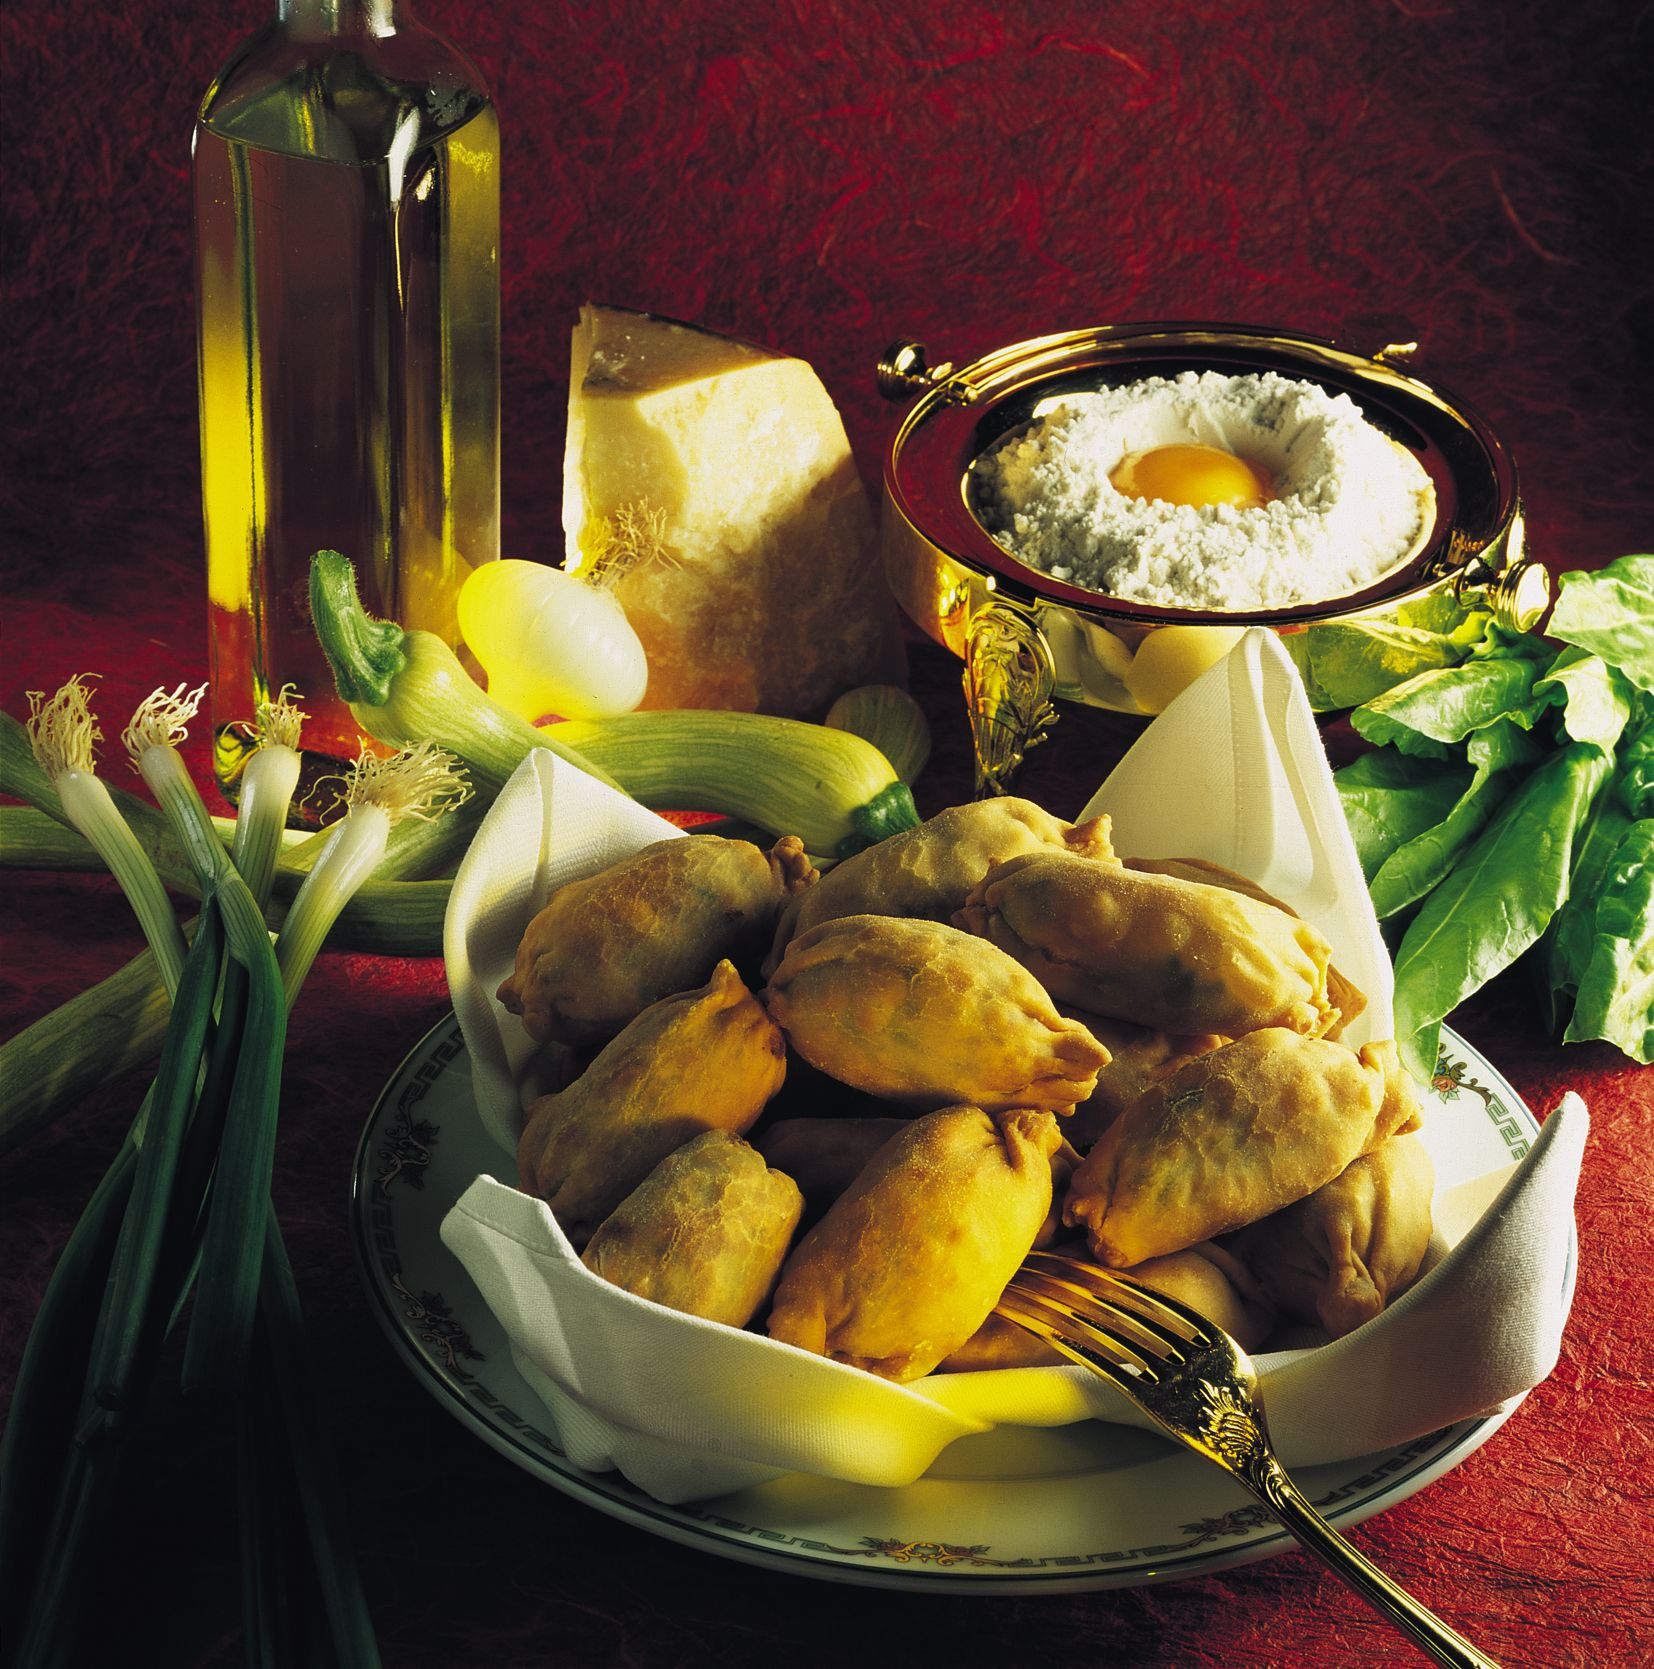 Another picture of Barbajuans, which are HSH Prince Albert's favorite snack!